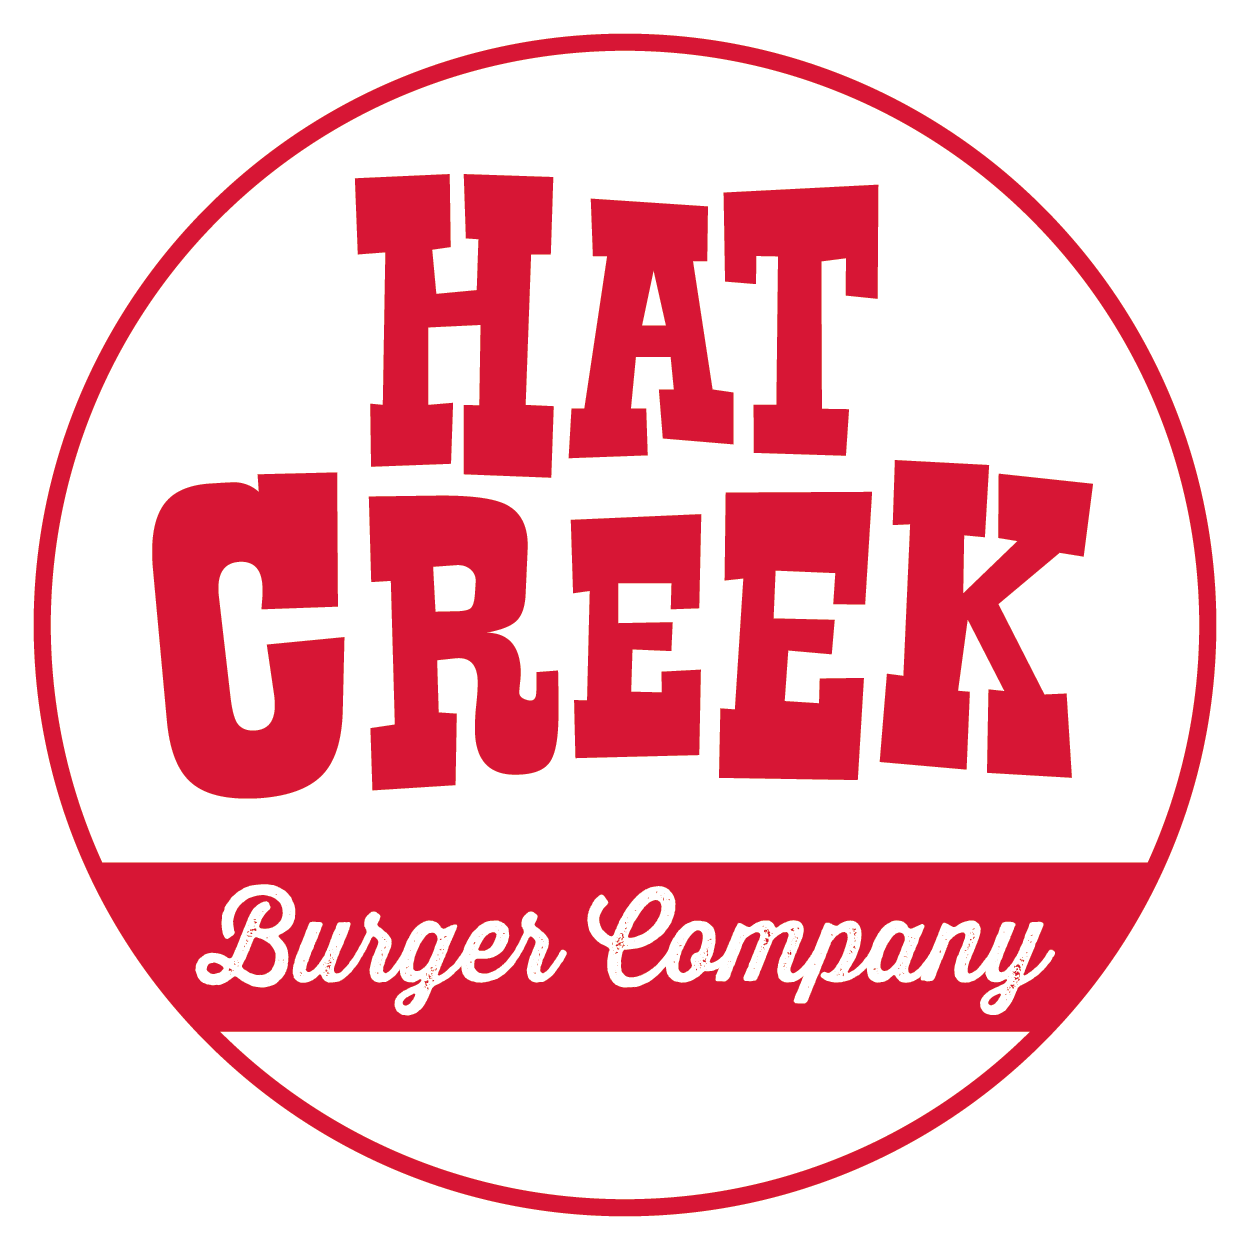 Hat Creek Burger Company